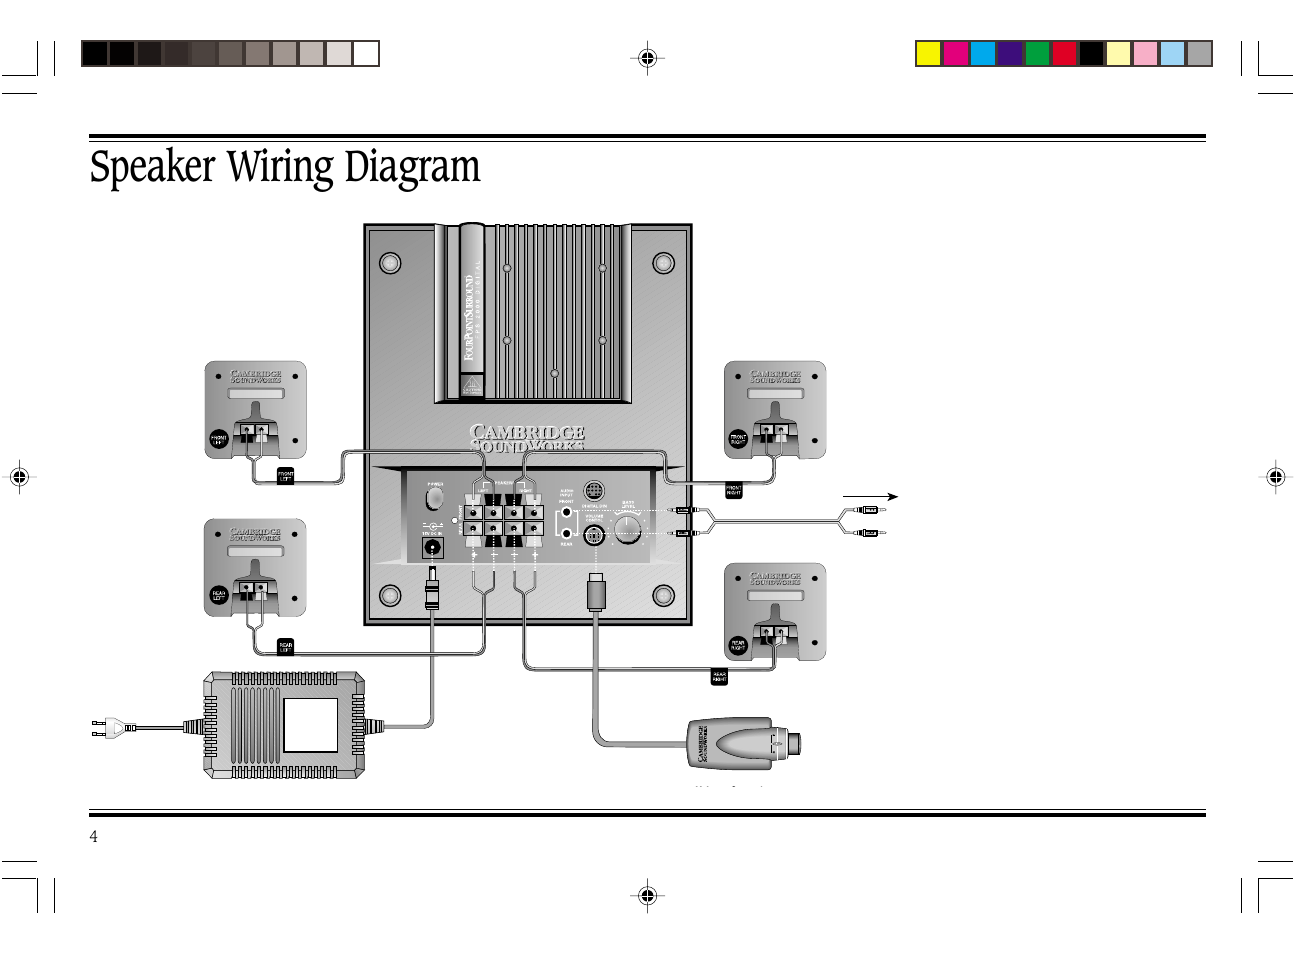 philips pc audio wiring diagrams car audio wiring diagrams free speaker wiring diagram | cambridge soundworks fps2000 user ...